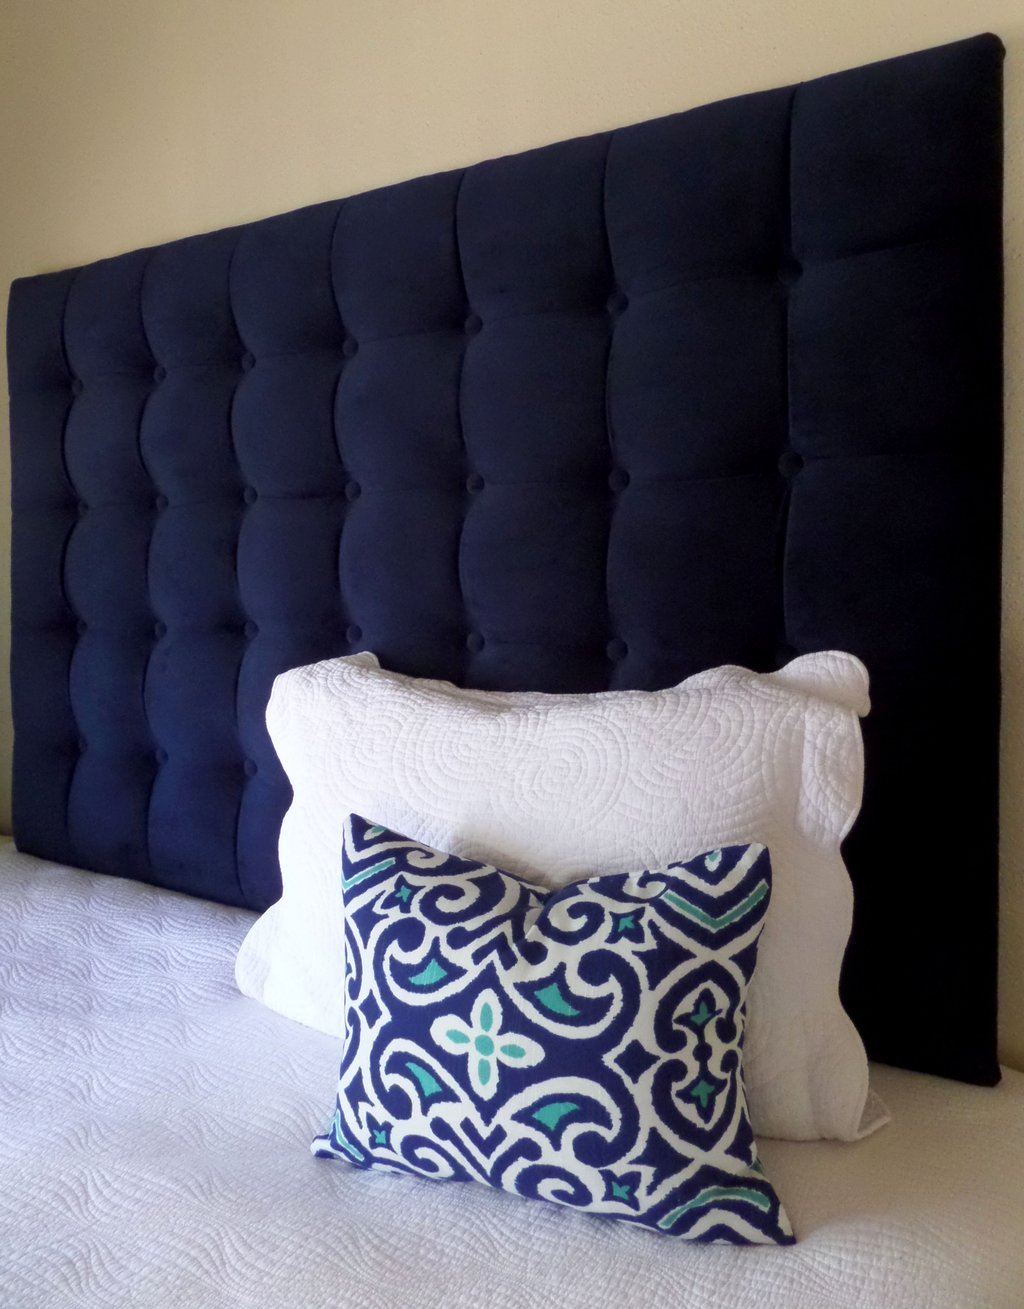 Queen Size Tall Tufted Upholstered Headboard West Elm Make An King Upholstered Headboard Size Sheet